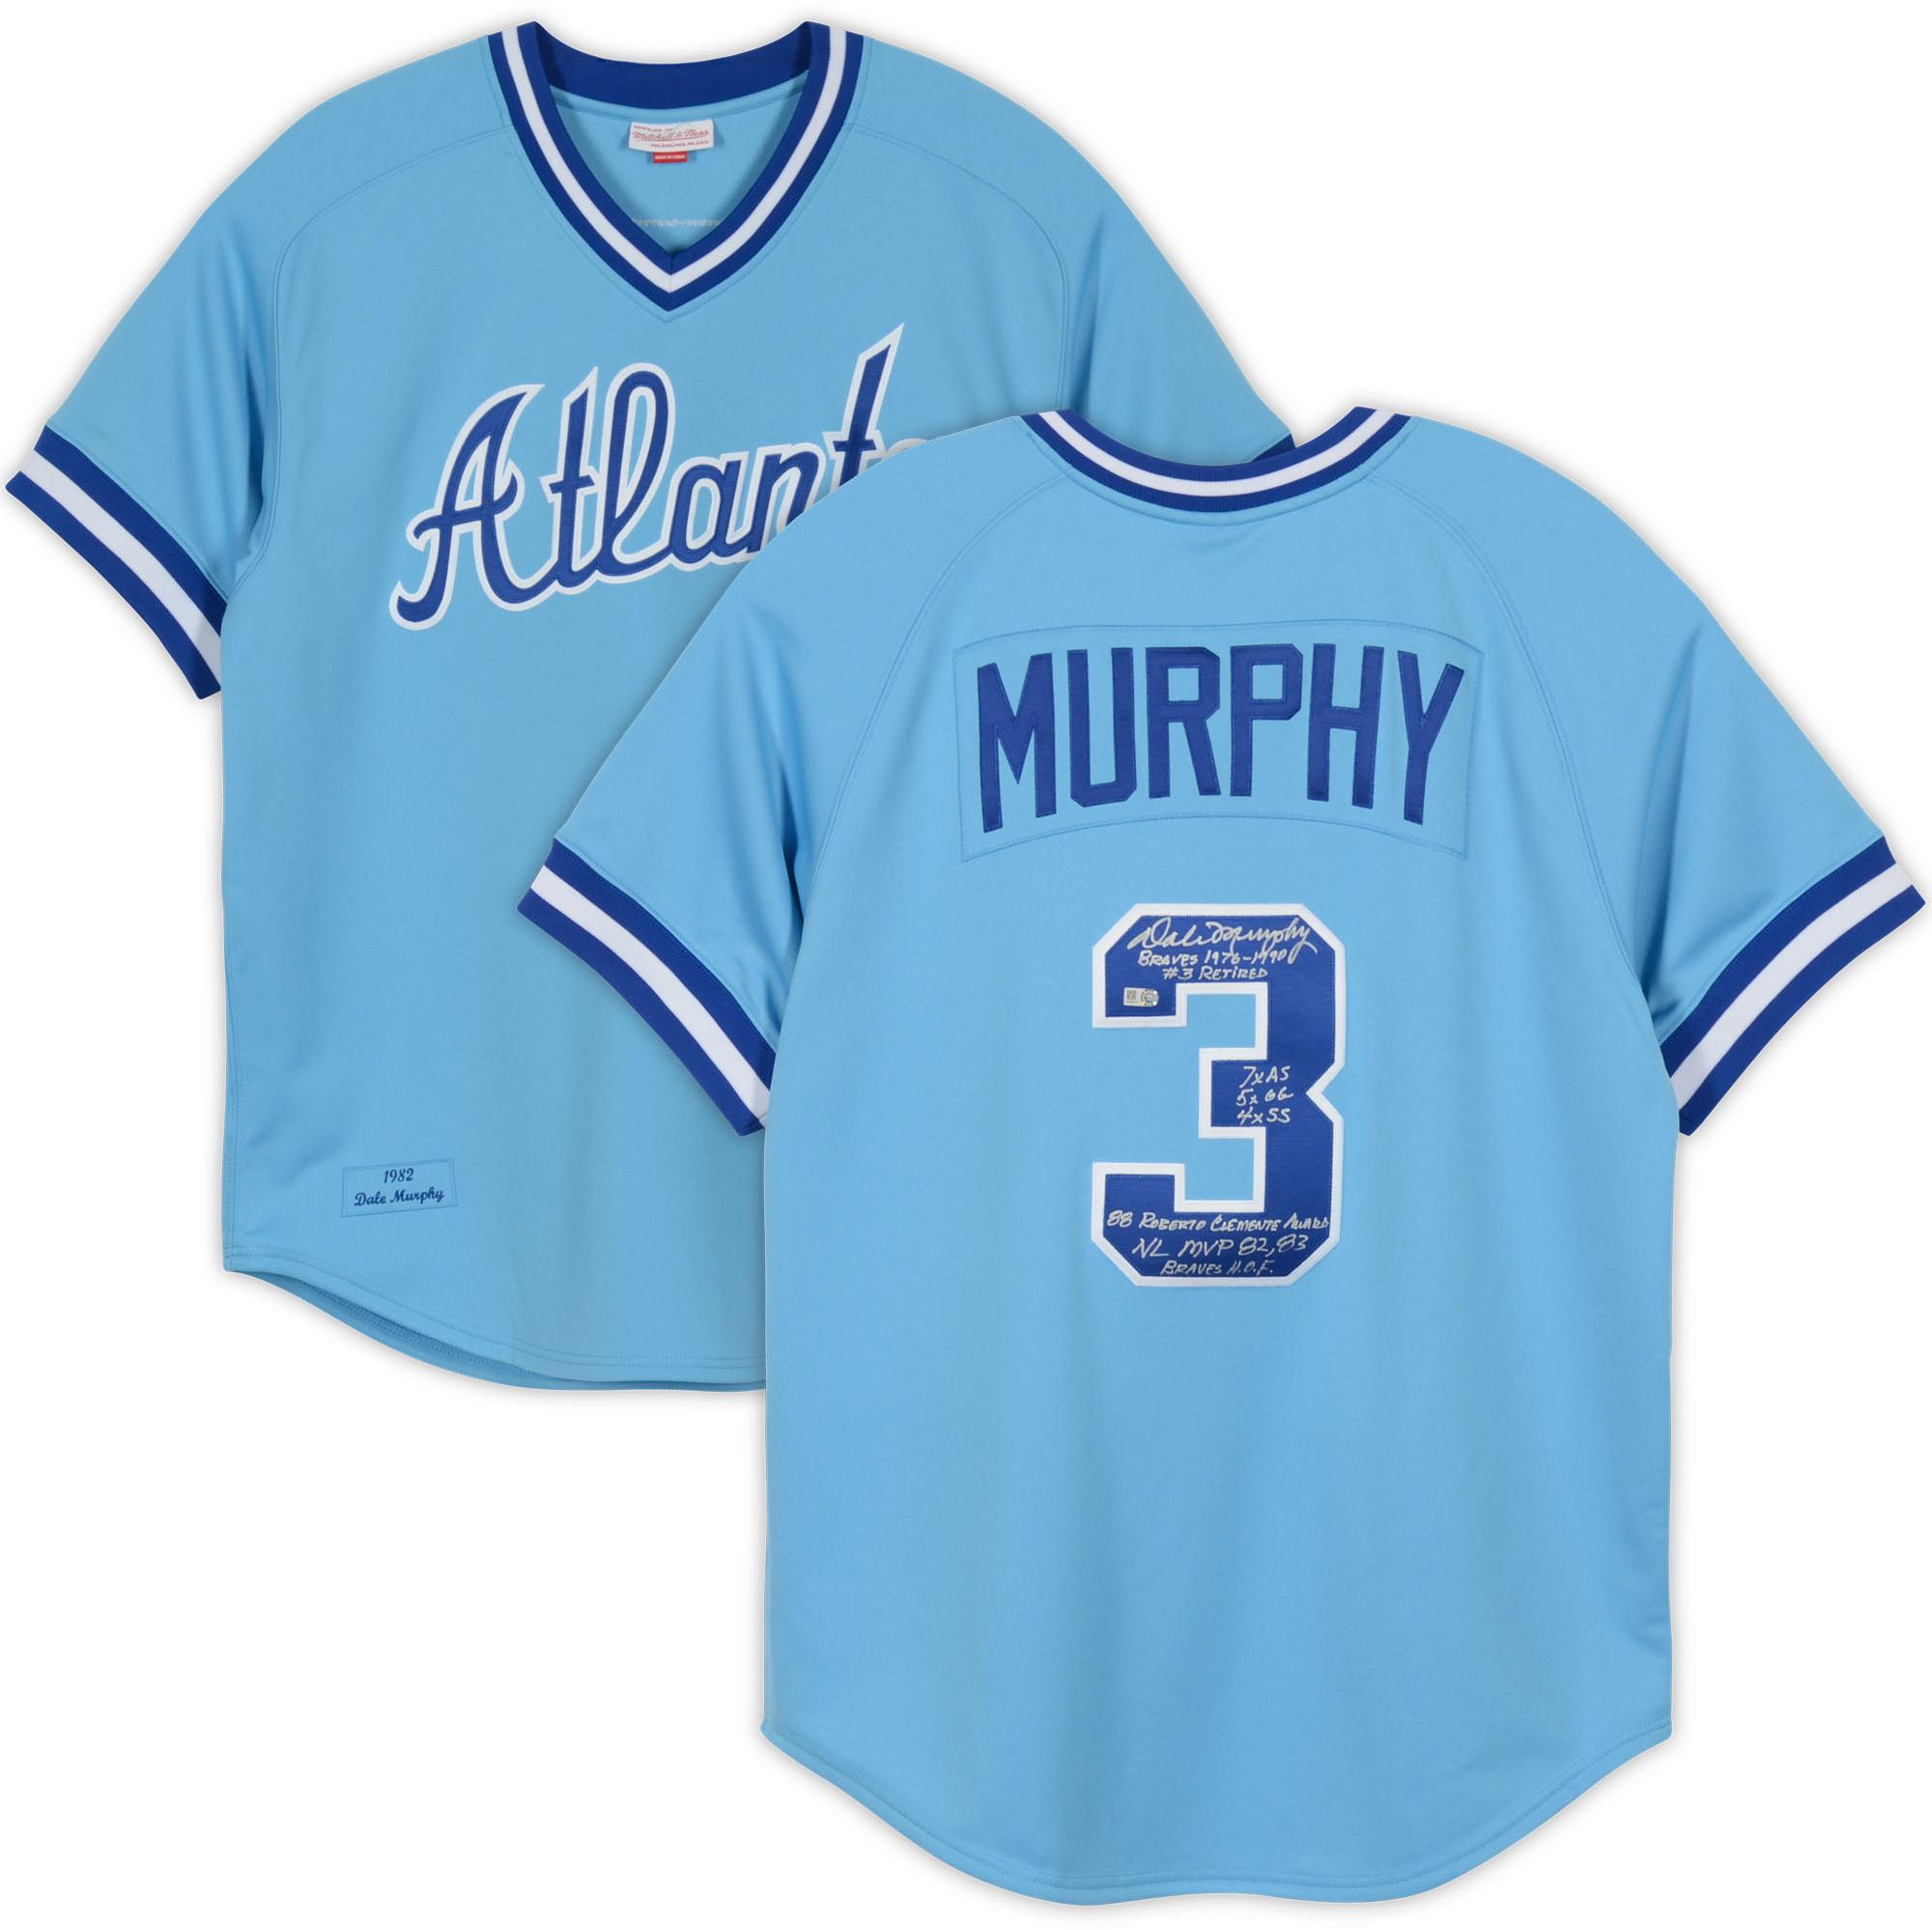 Dale Murphy Atlanta Braves Autographed Mitchell and Ness Powder Blue Authentic Jersey with Multiple Inscriptions - #3 Limited Edition of 12 - Fanatics Authentic Certified